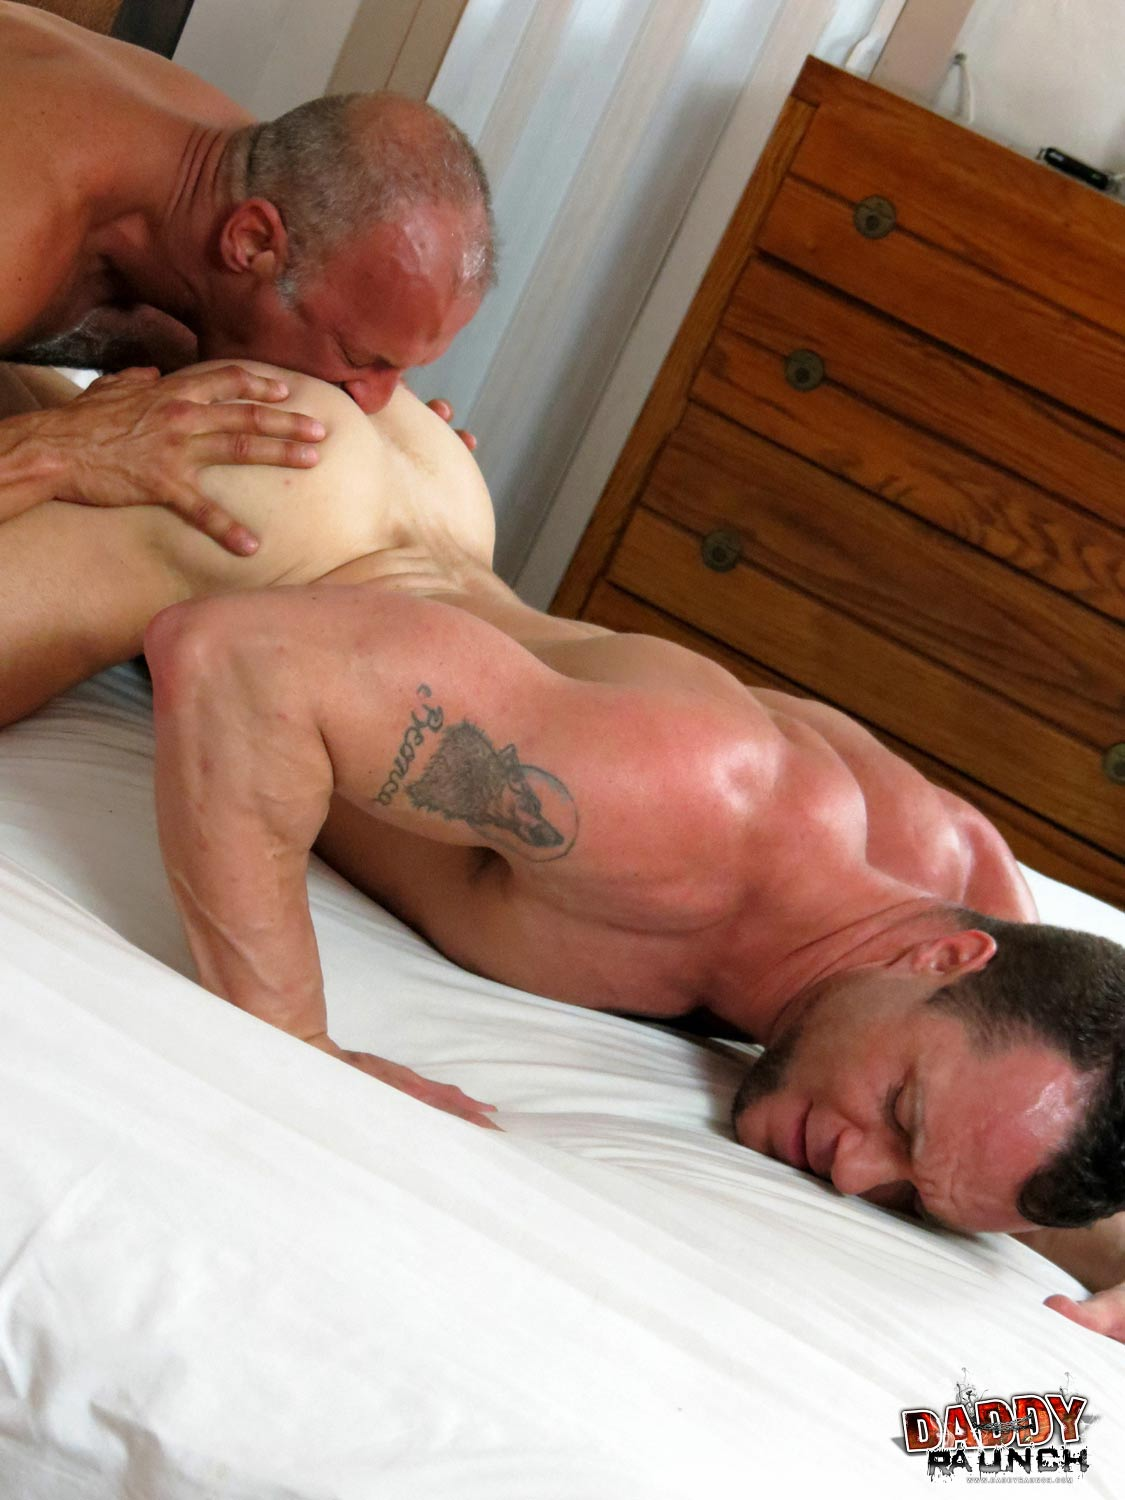 Daddy Raunch Coach Austin Drew Sumrok Daddy Coach Fucking A Muscle Jock Amateur Gay Porn 10 Hairy Daddy Coach Fucks A Younger Jock Bareback and Hard